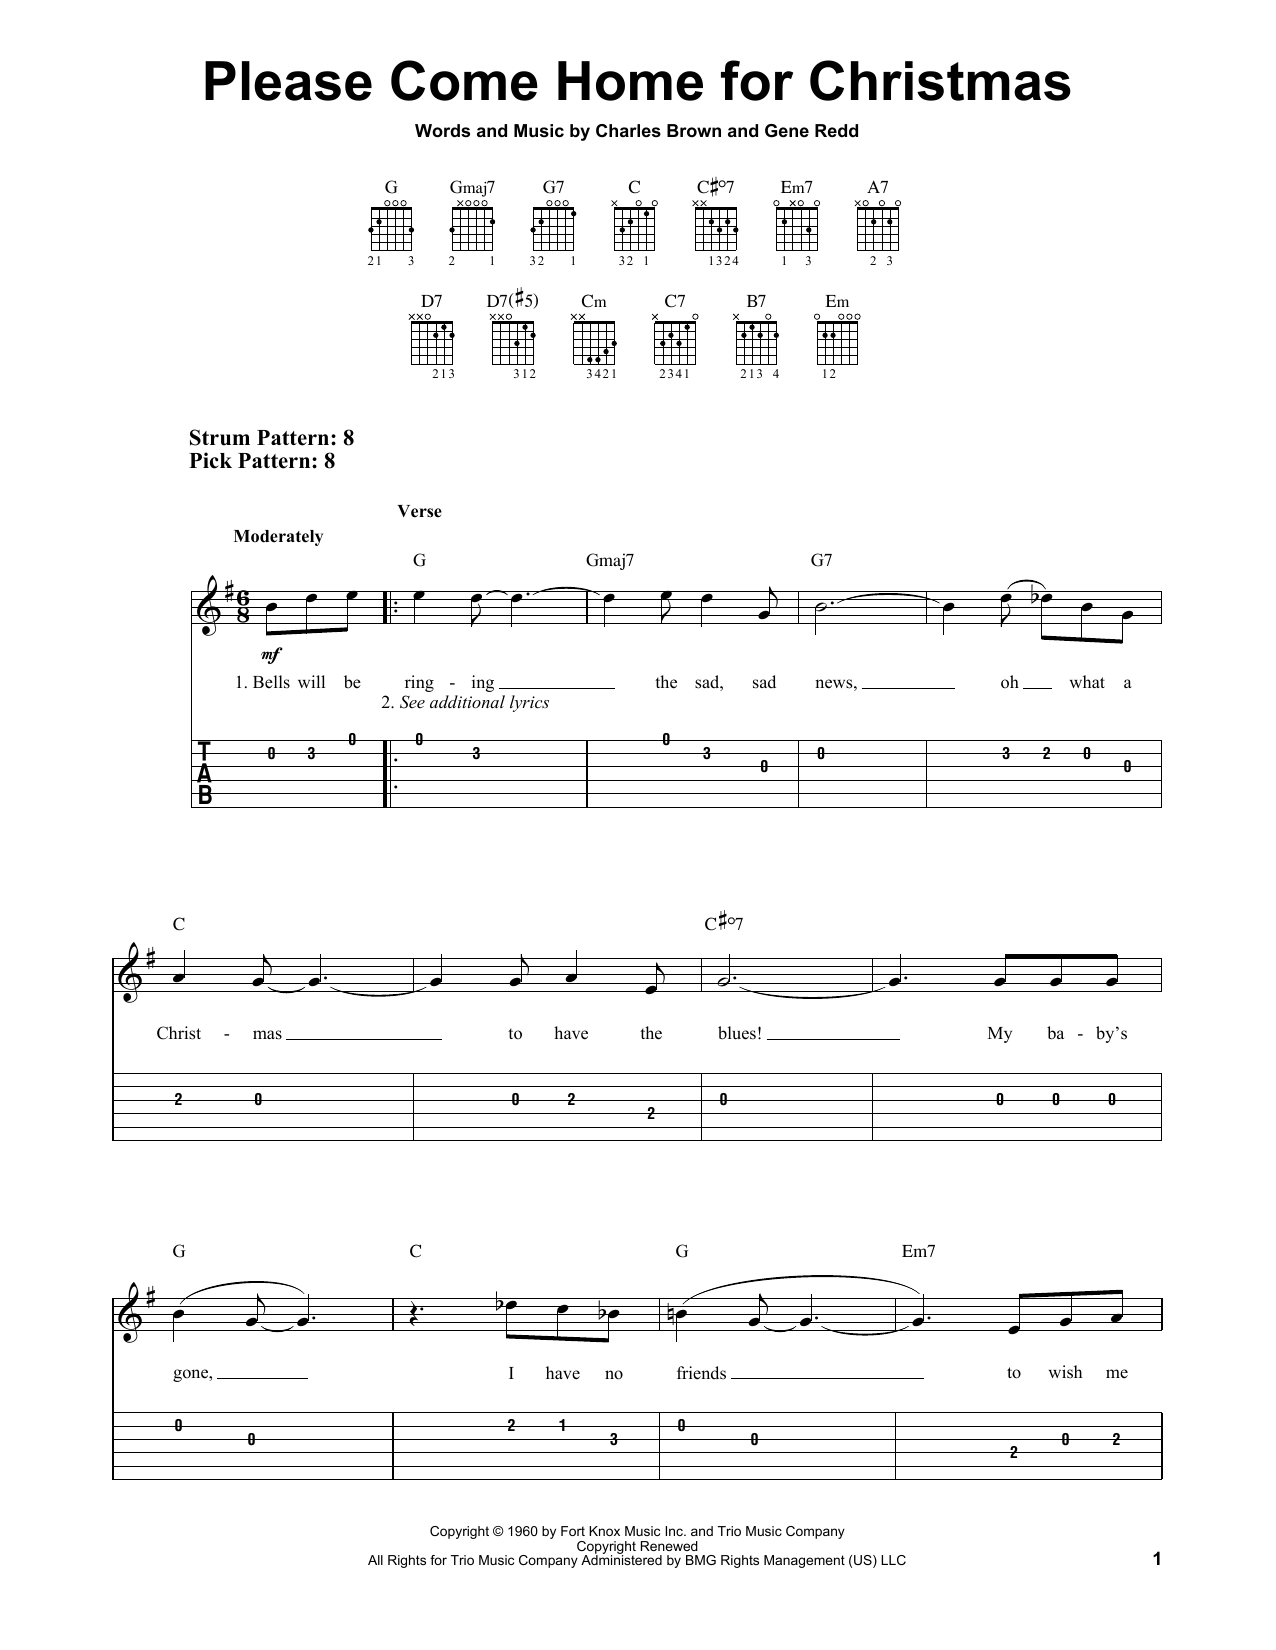 Charles brown please come home for christmas - Charles Brown Please Come Home For Christmas Easy Guitar Tab